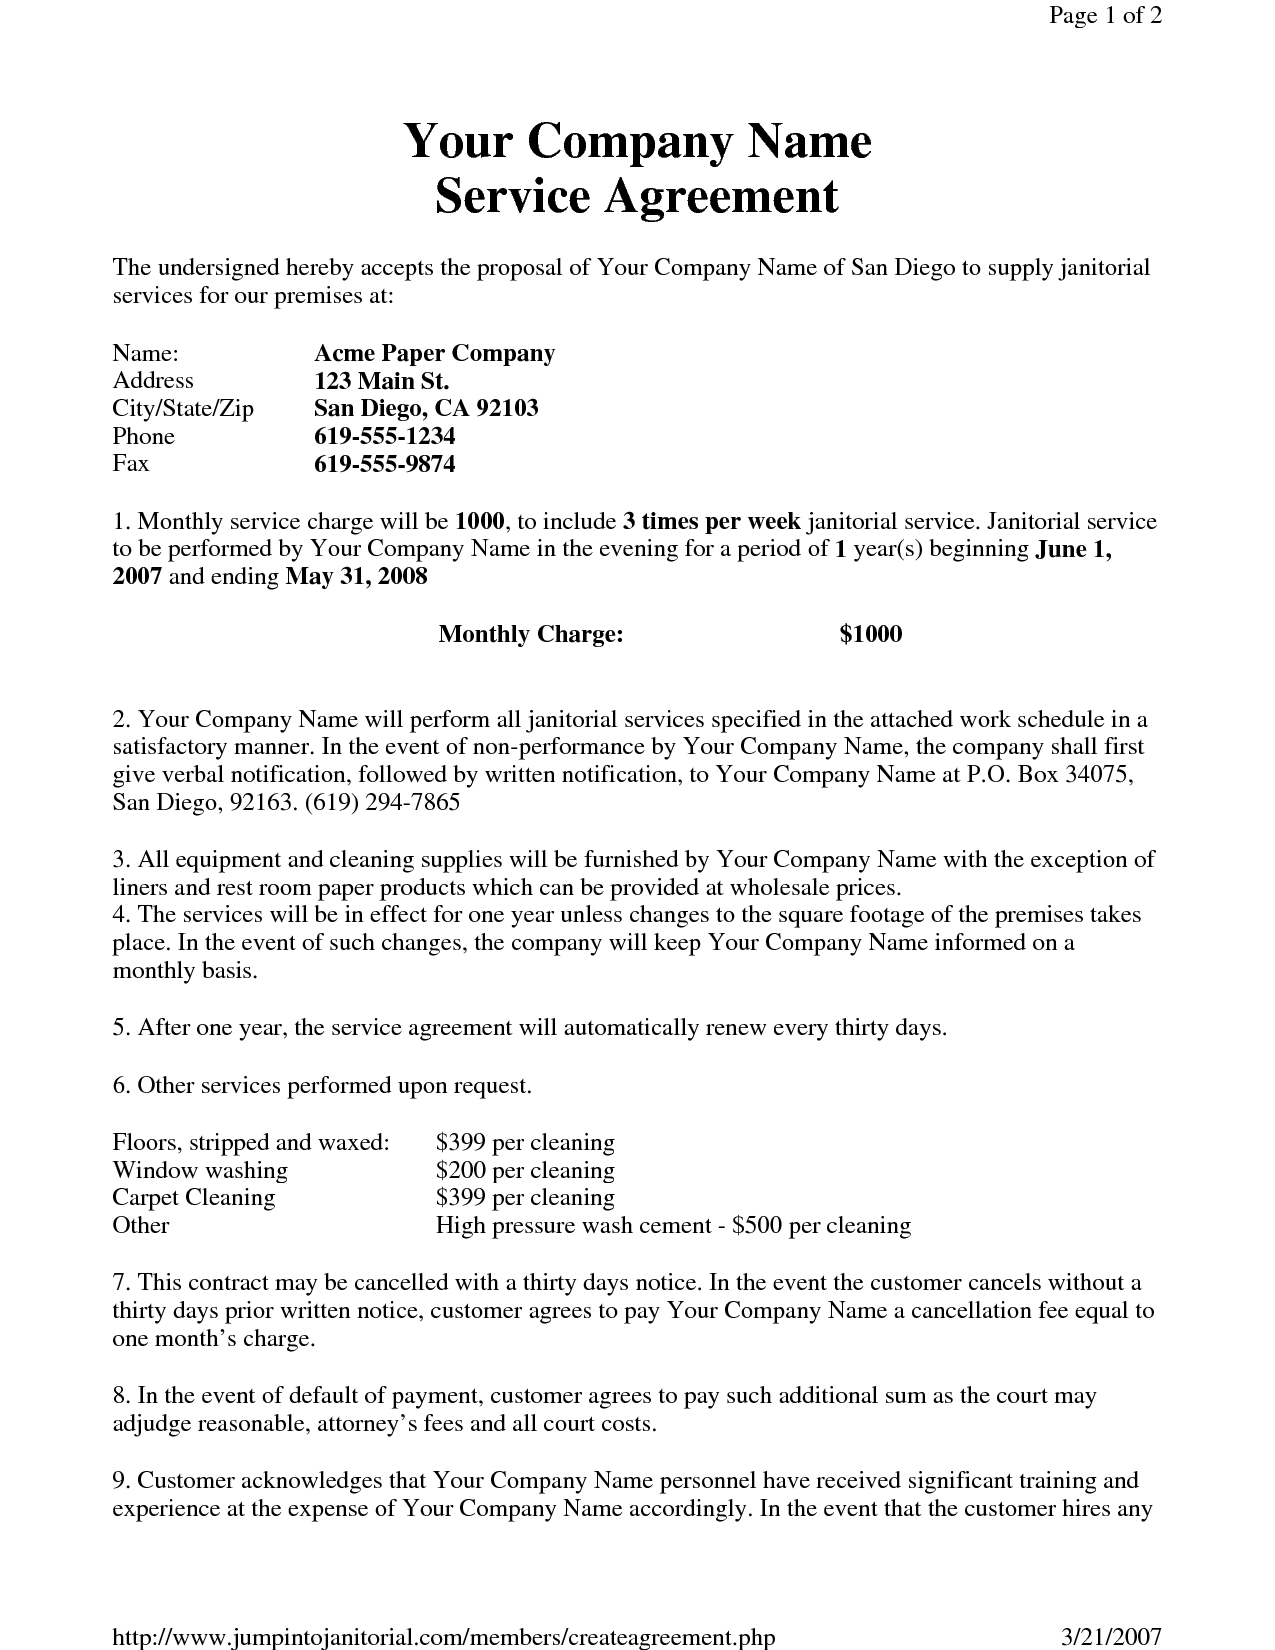 Janitorial Service Agreement By Hgh